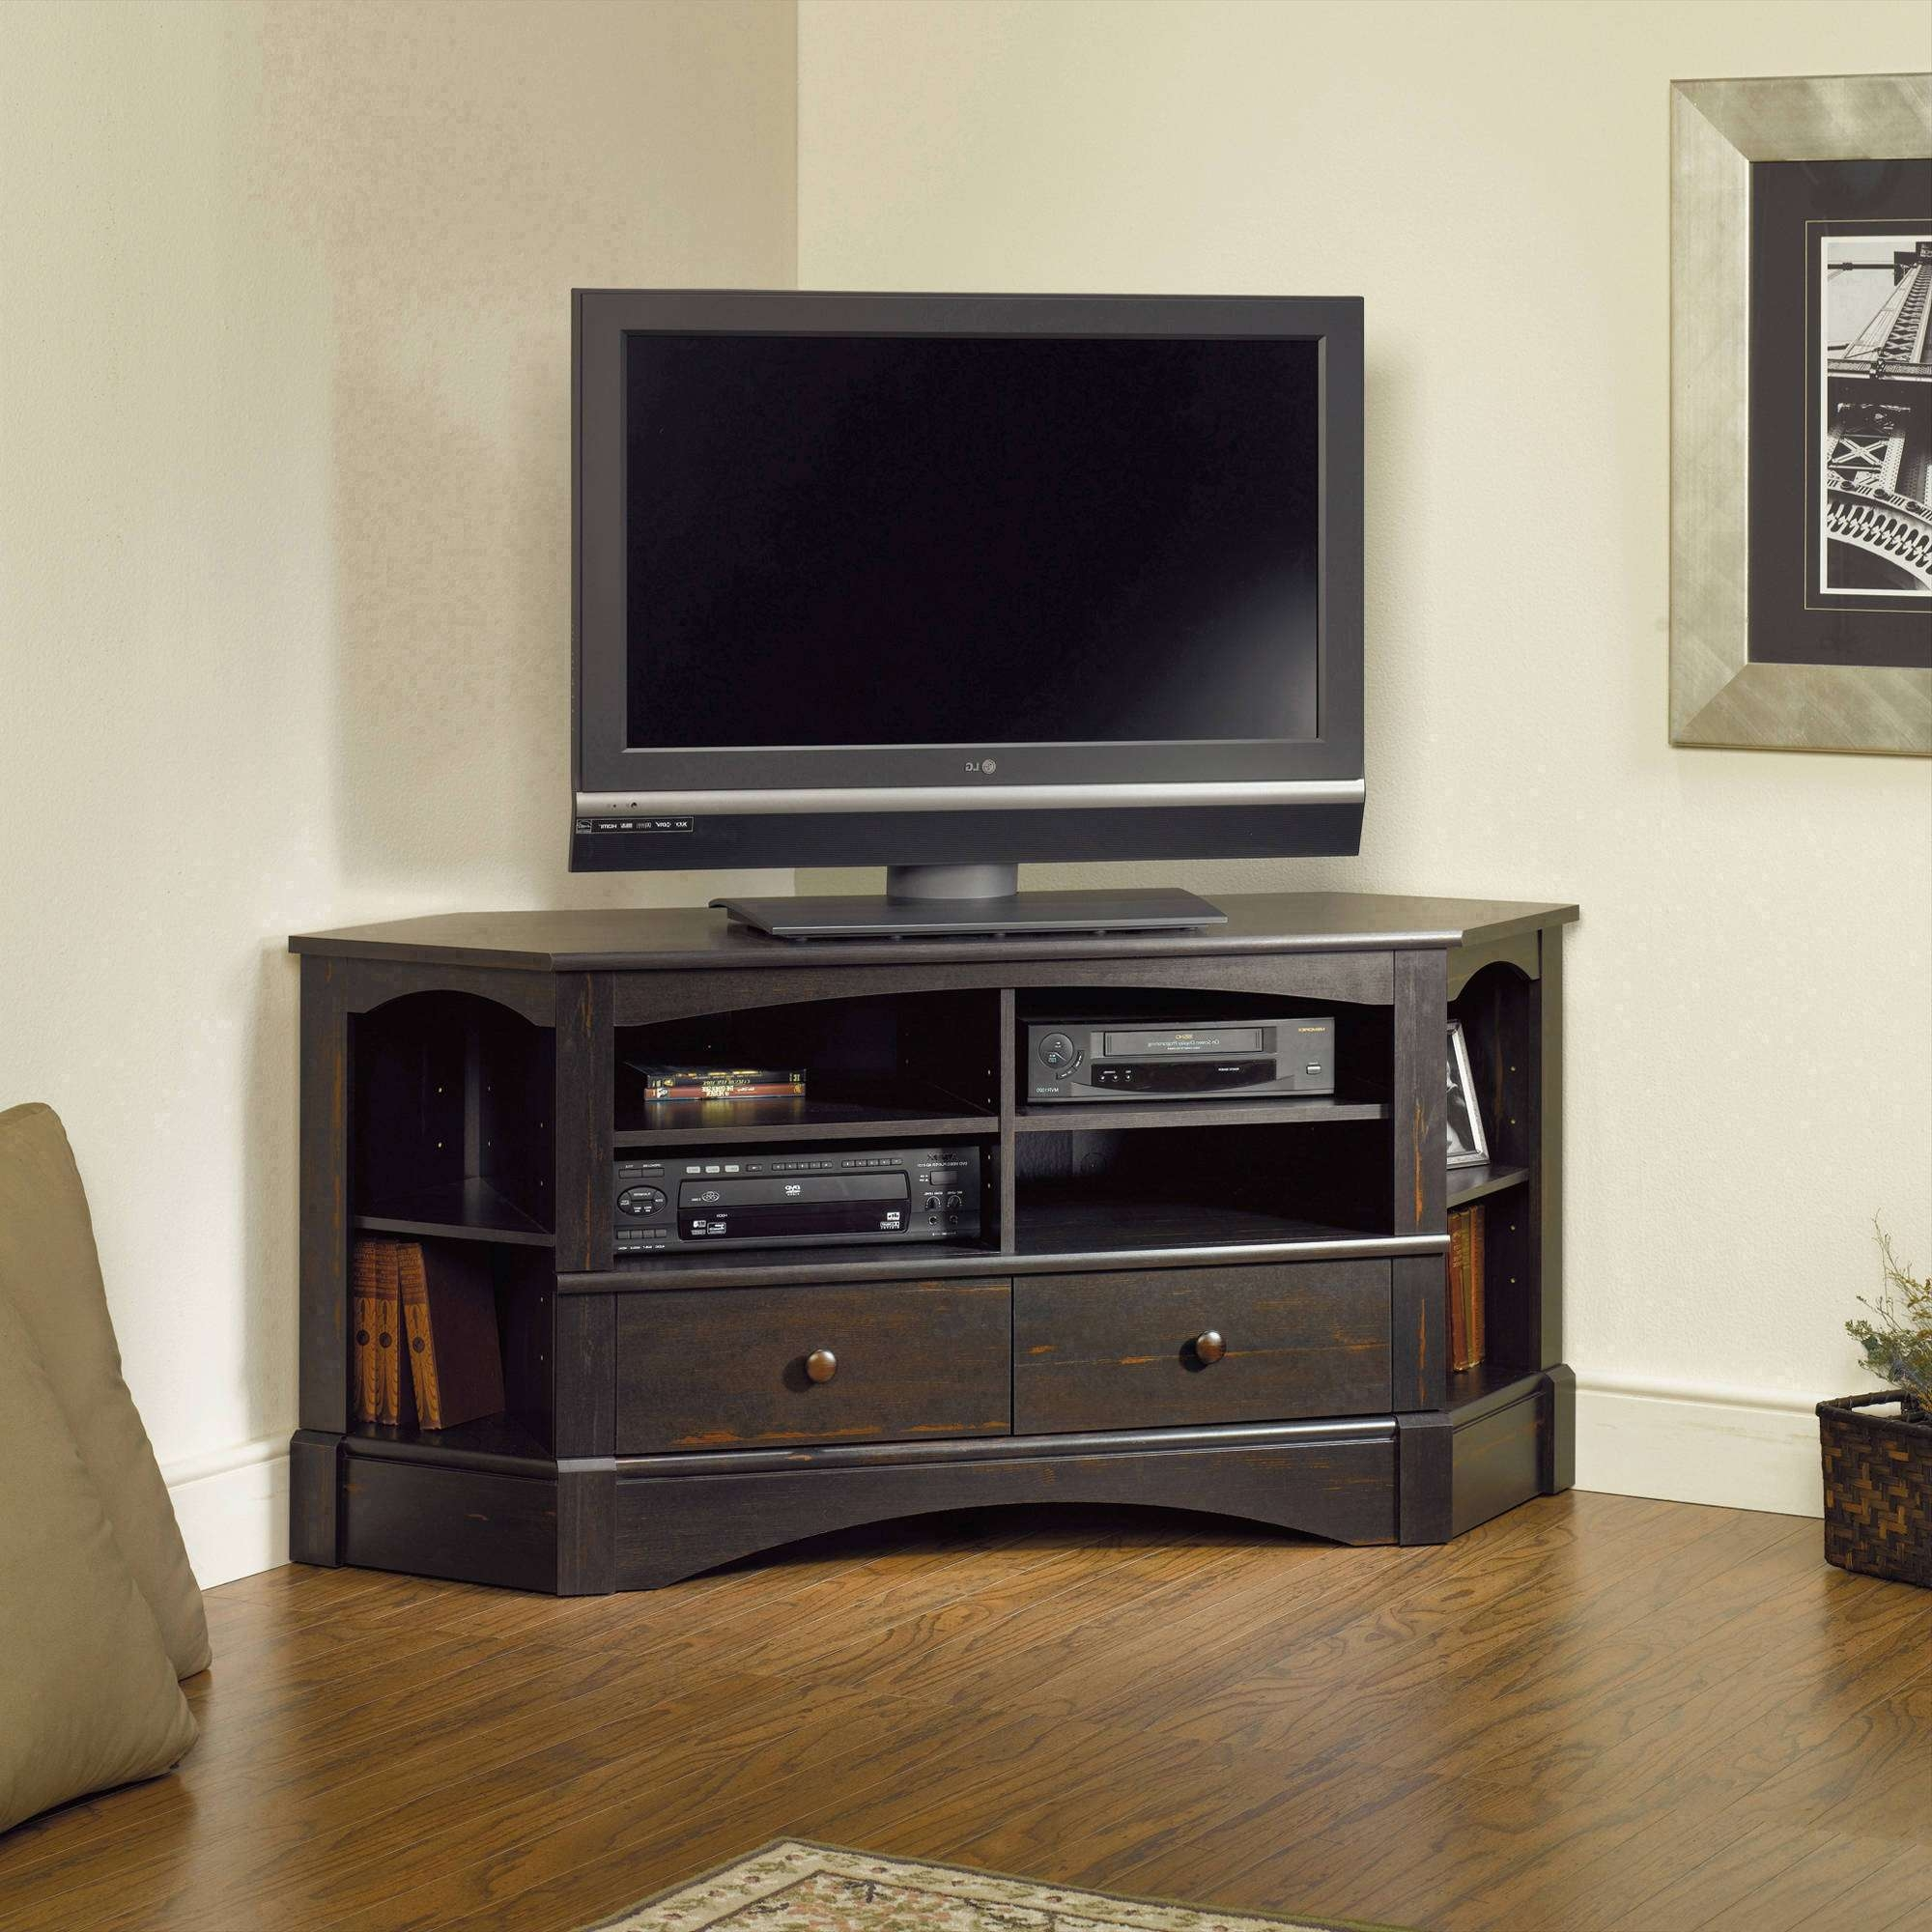 Tv Stand : 32 Unusual 55 Inch Corner Tv Stand With Mount Images Inside Unusual Tv Stands (View 13 of 15)